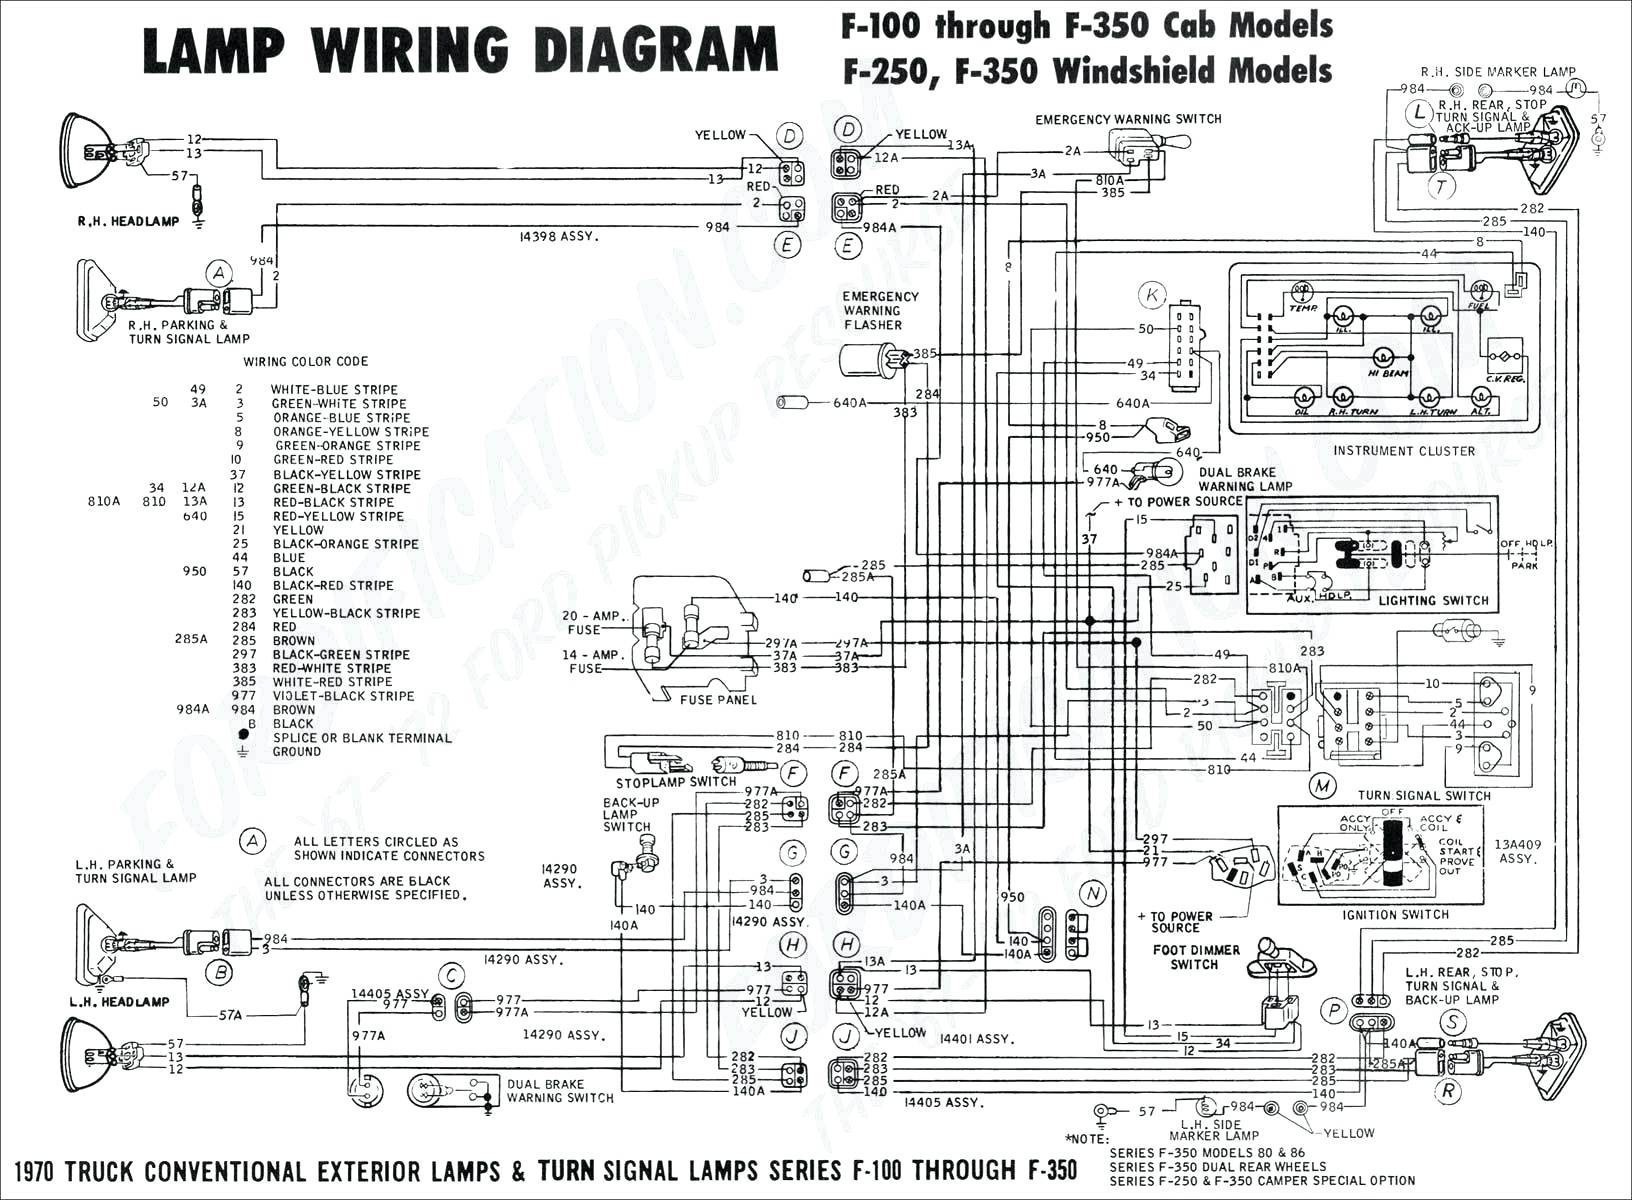 2005 Chrysler town and Country Instrument Cluster Wiring Diagrams Ethernet End Wiring Diagram Of 2005 Chrysler town and Country Instrument Cluster Wiring Diagrams